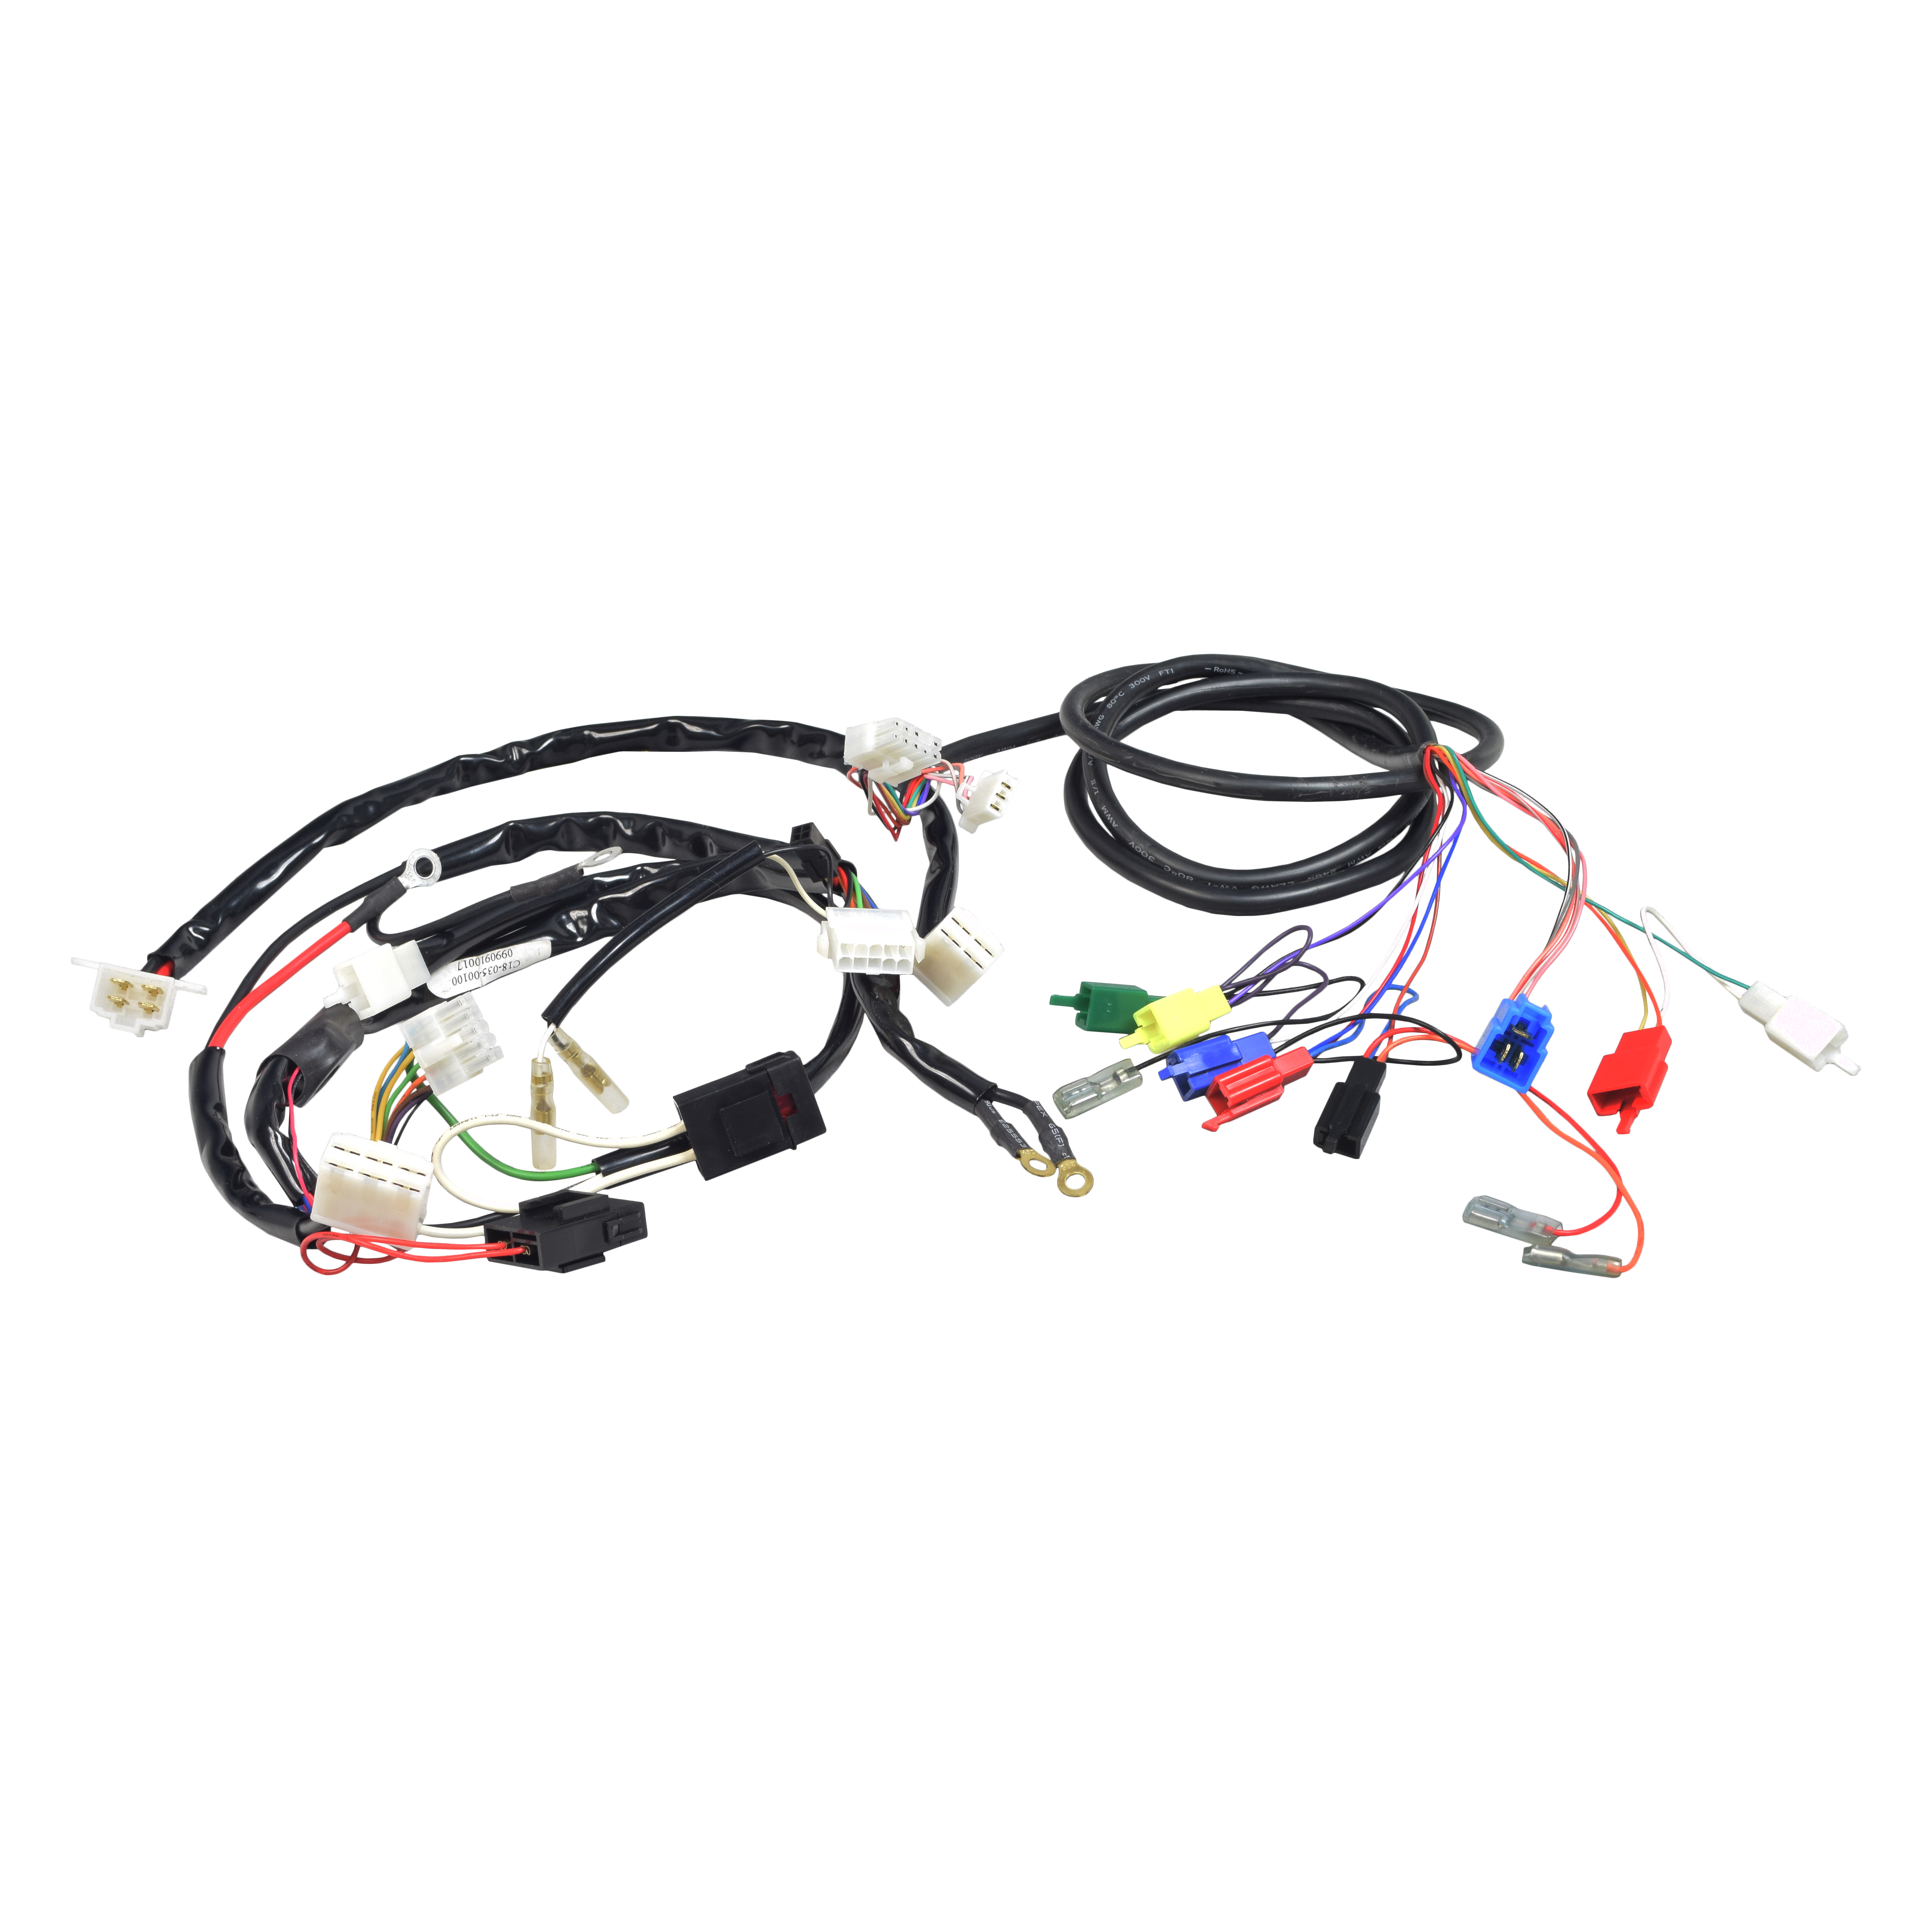 Wire Harness For The Drive Medical Phoenix 3 Scooter